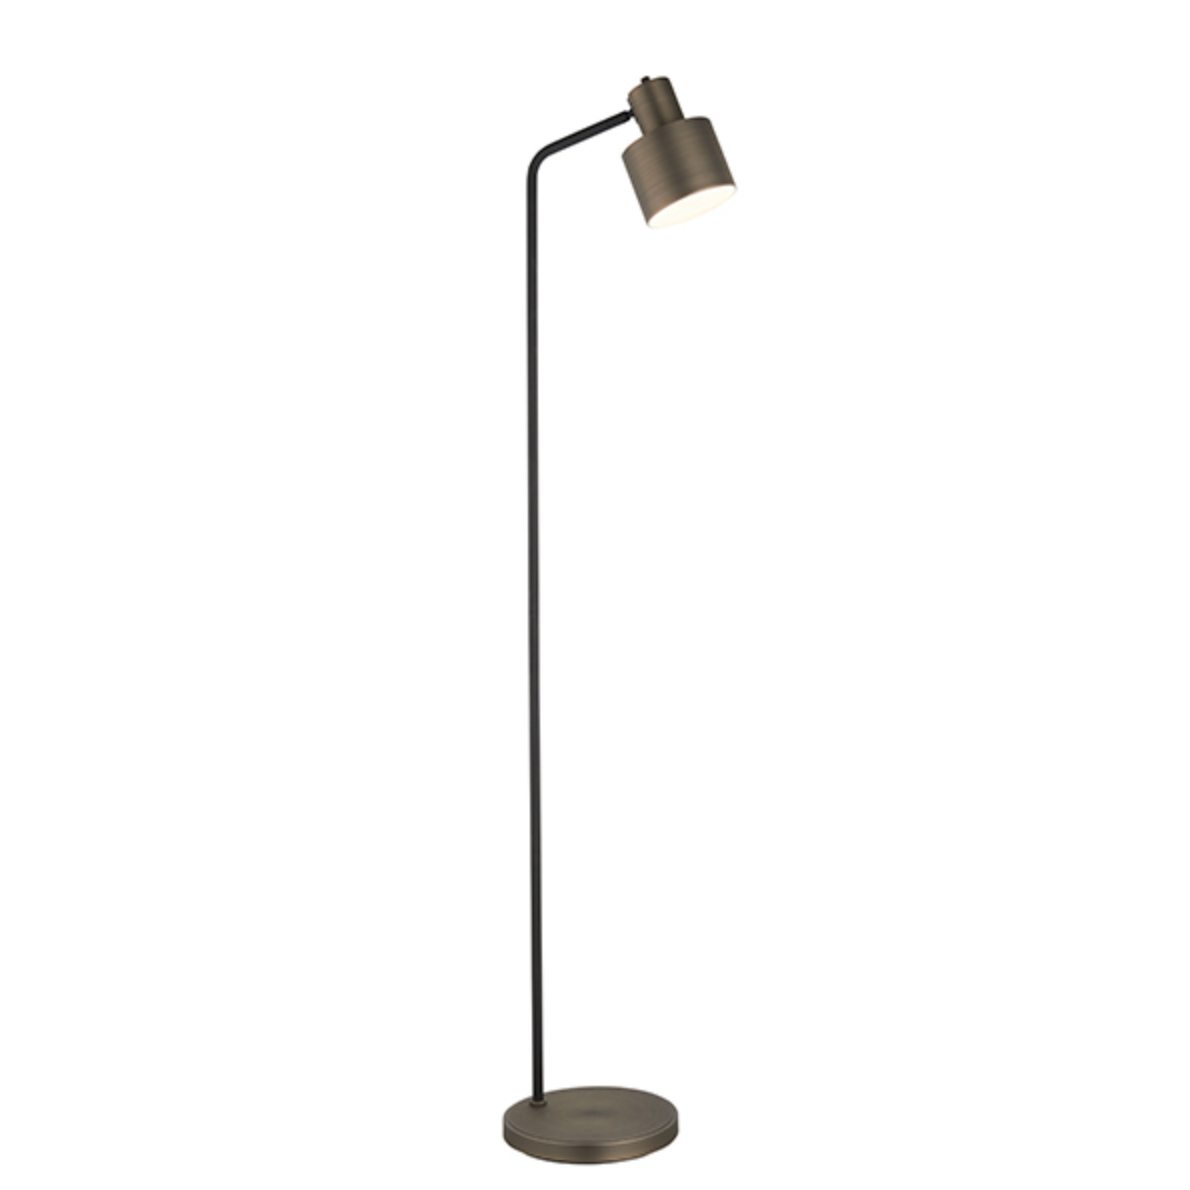 Image of: Black And Bronze Floor Lamp Id 9646 The Lighting Centre Guildford Ltd